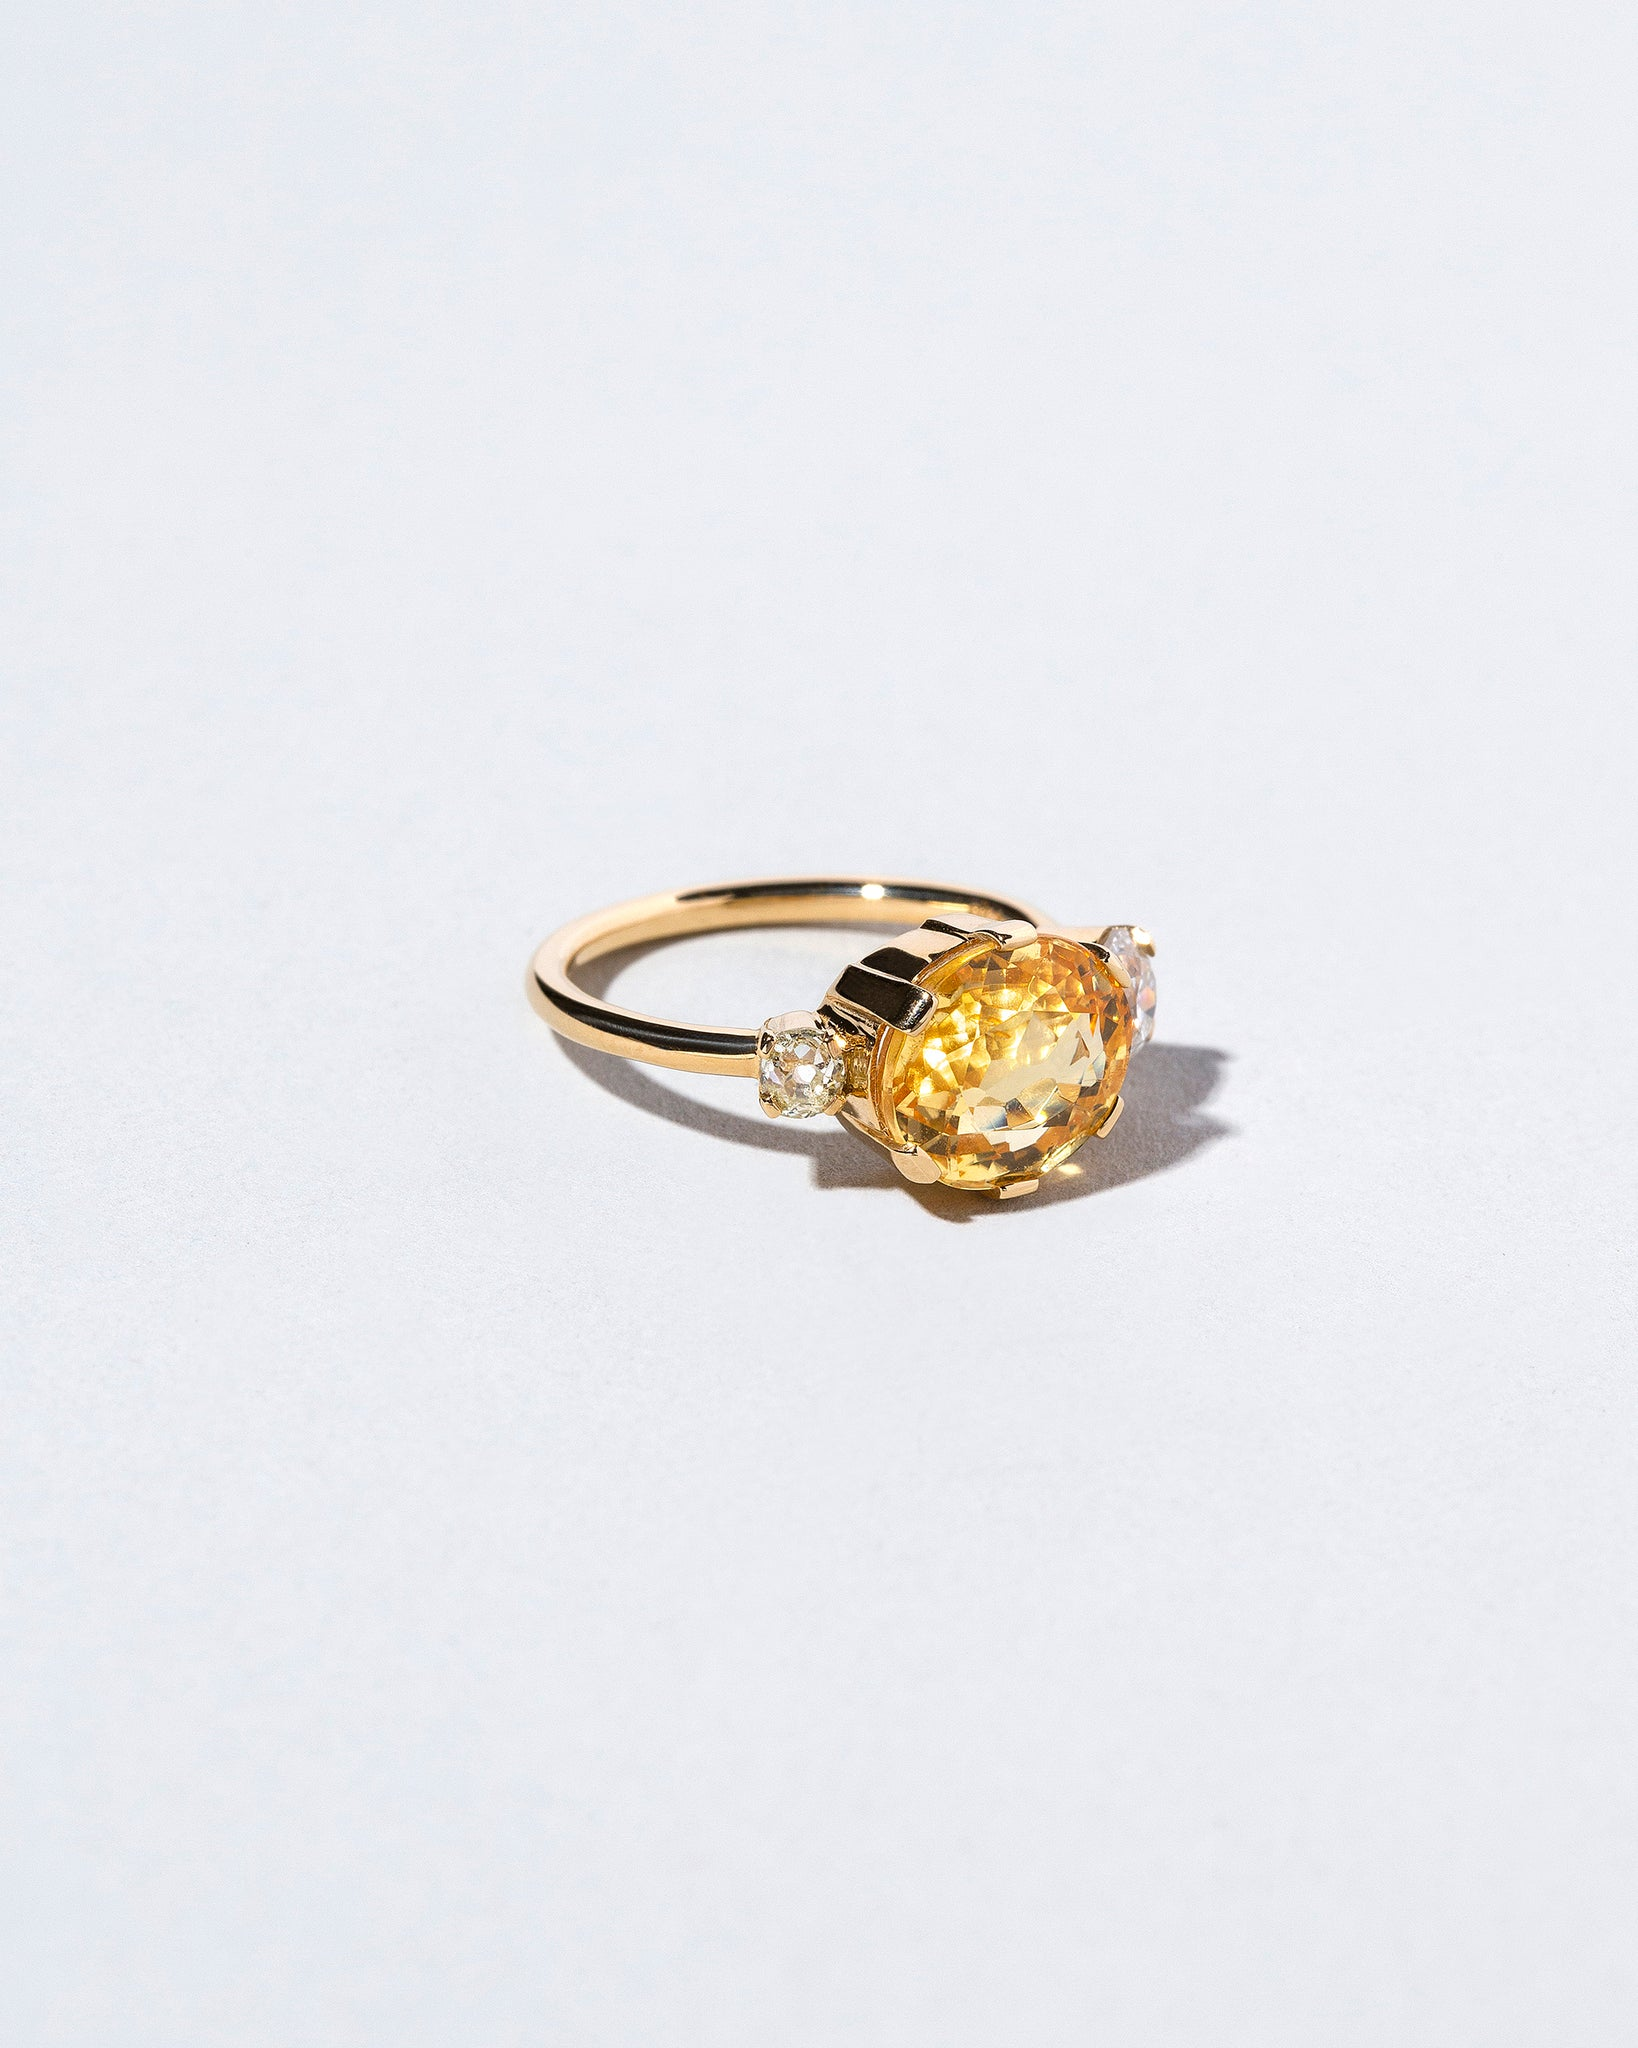 Ethy Ring side view